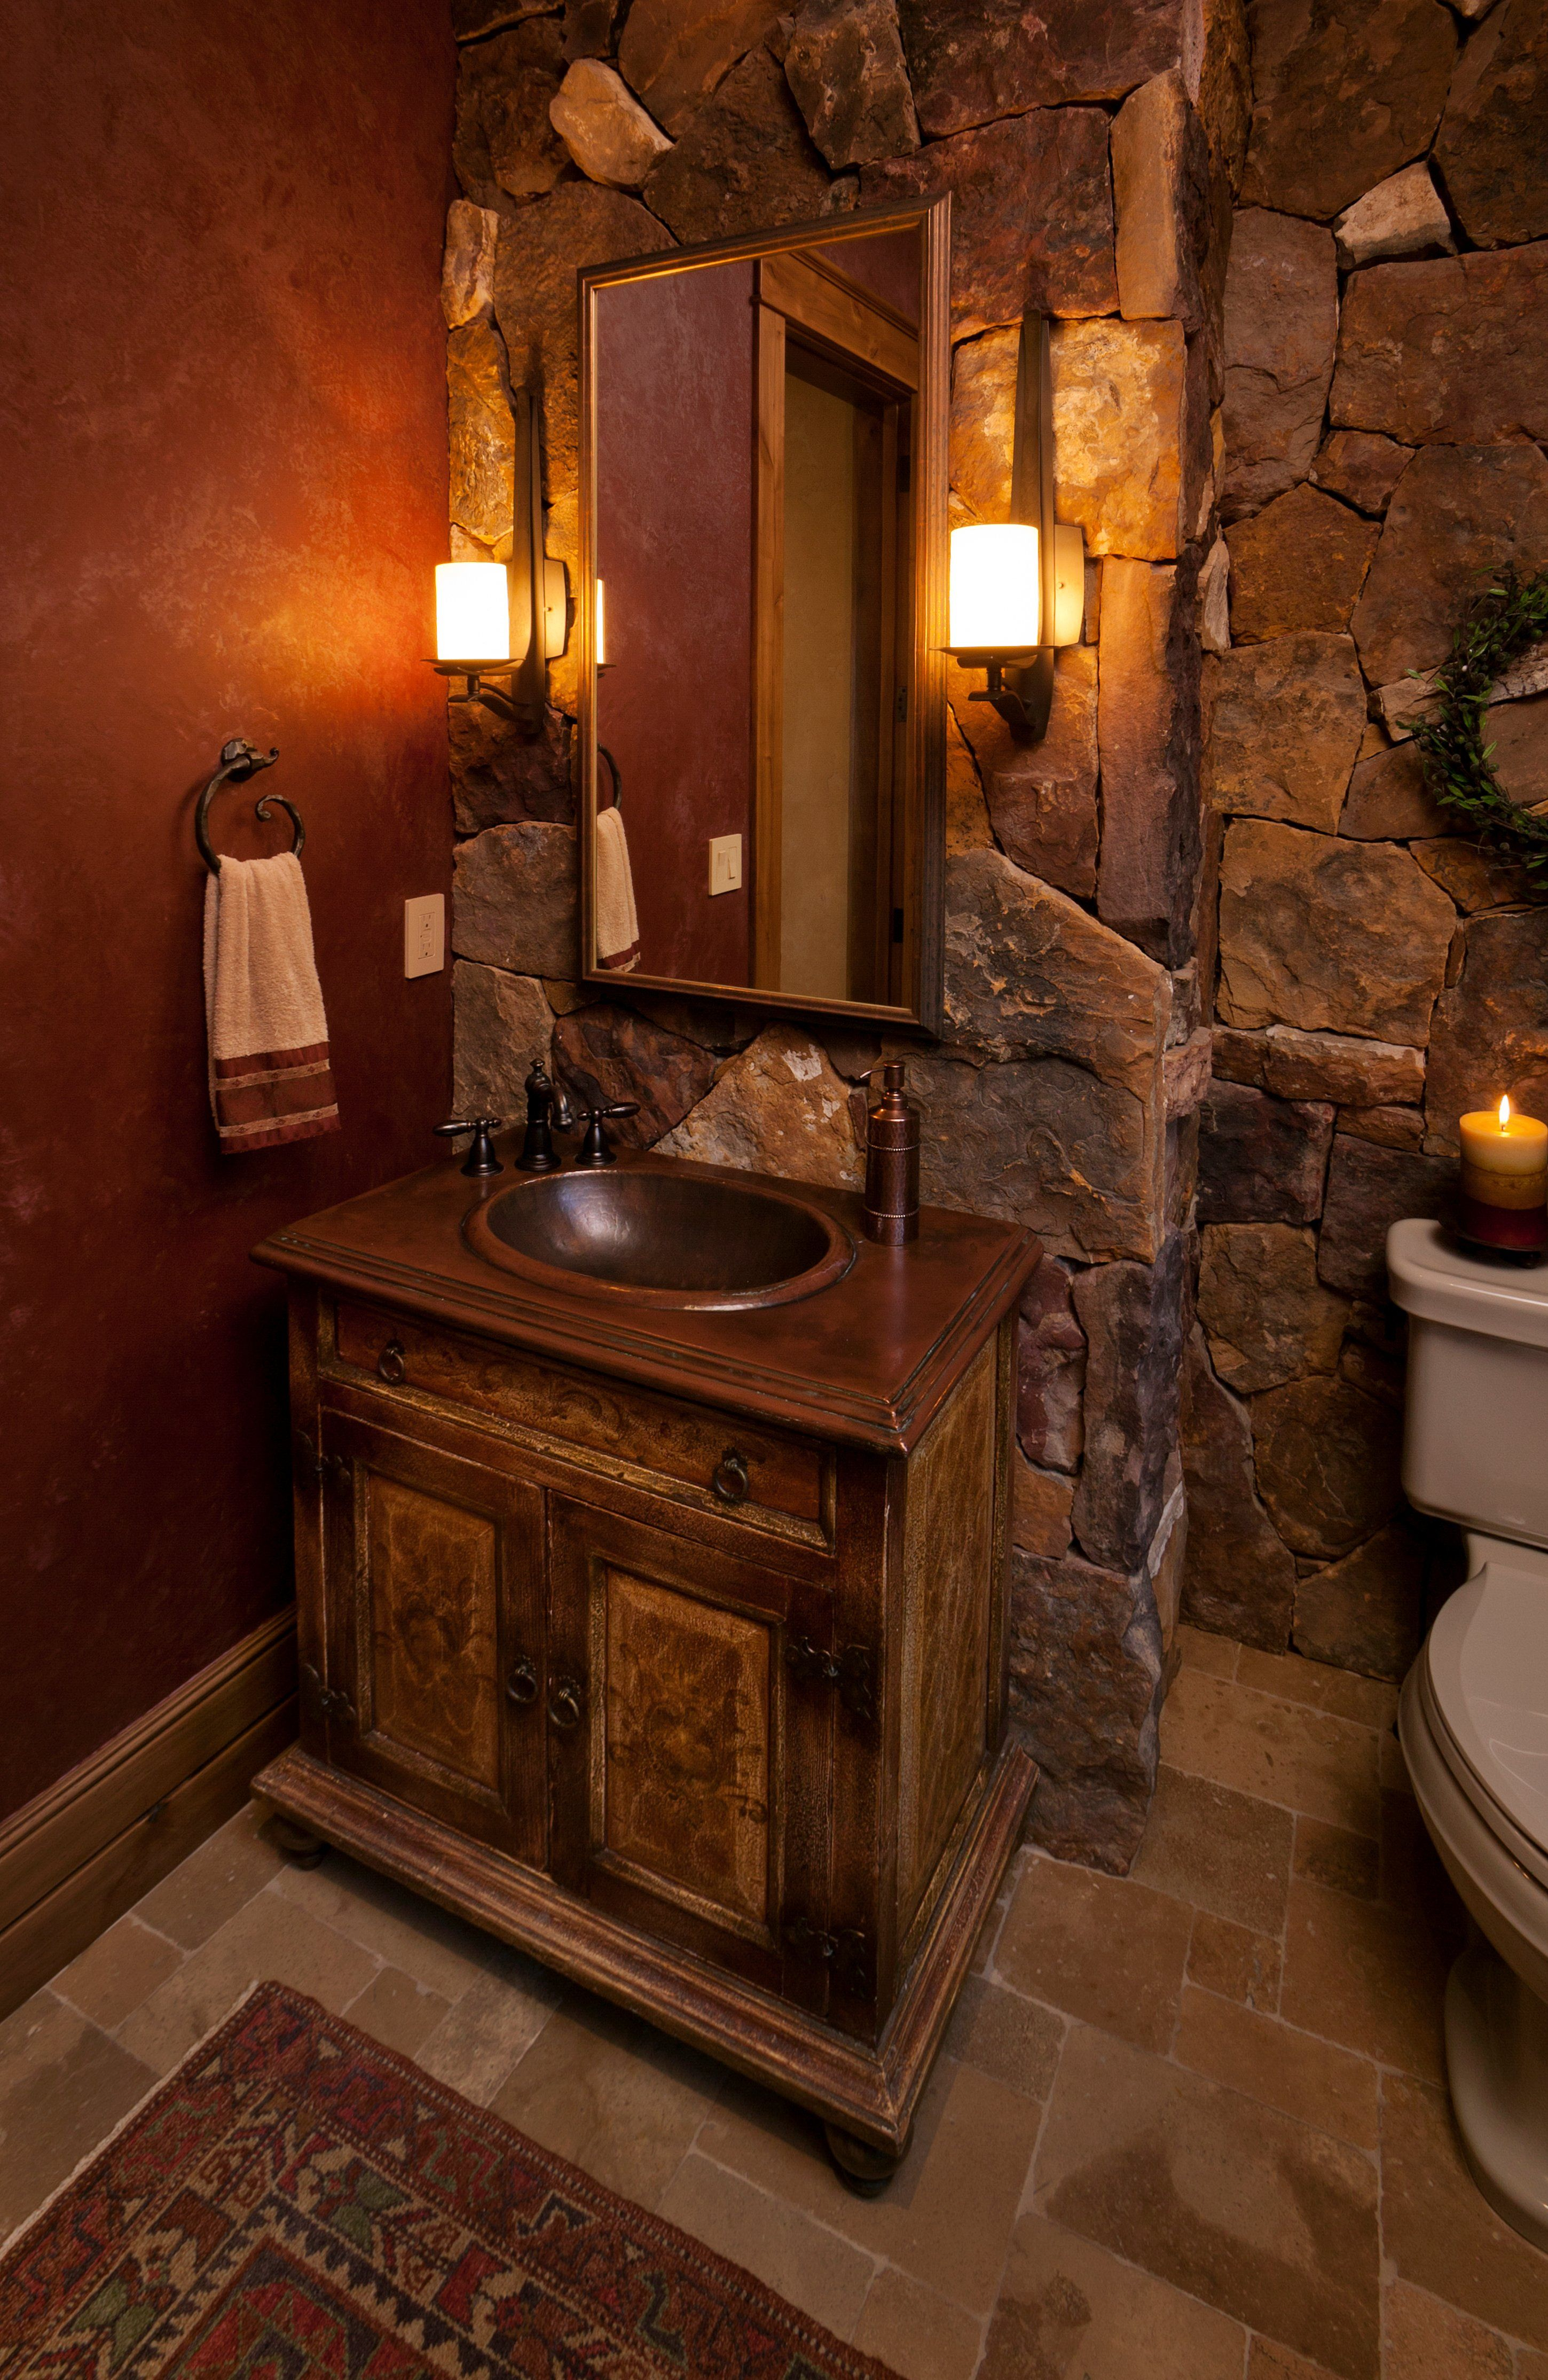 of architecture decoration ideas wall cabin vintage using watering inspiration wood knotty images for pine your good cool decorative bathroom looking cabins panel solid and shower can wonderful